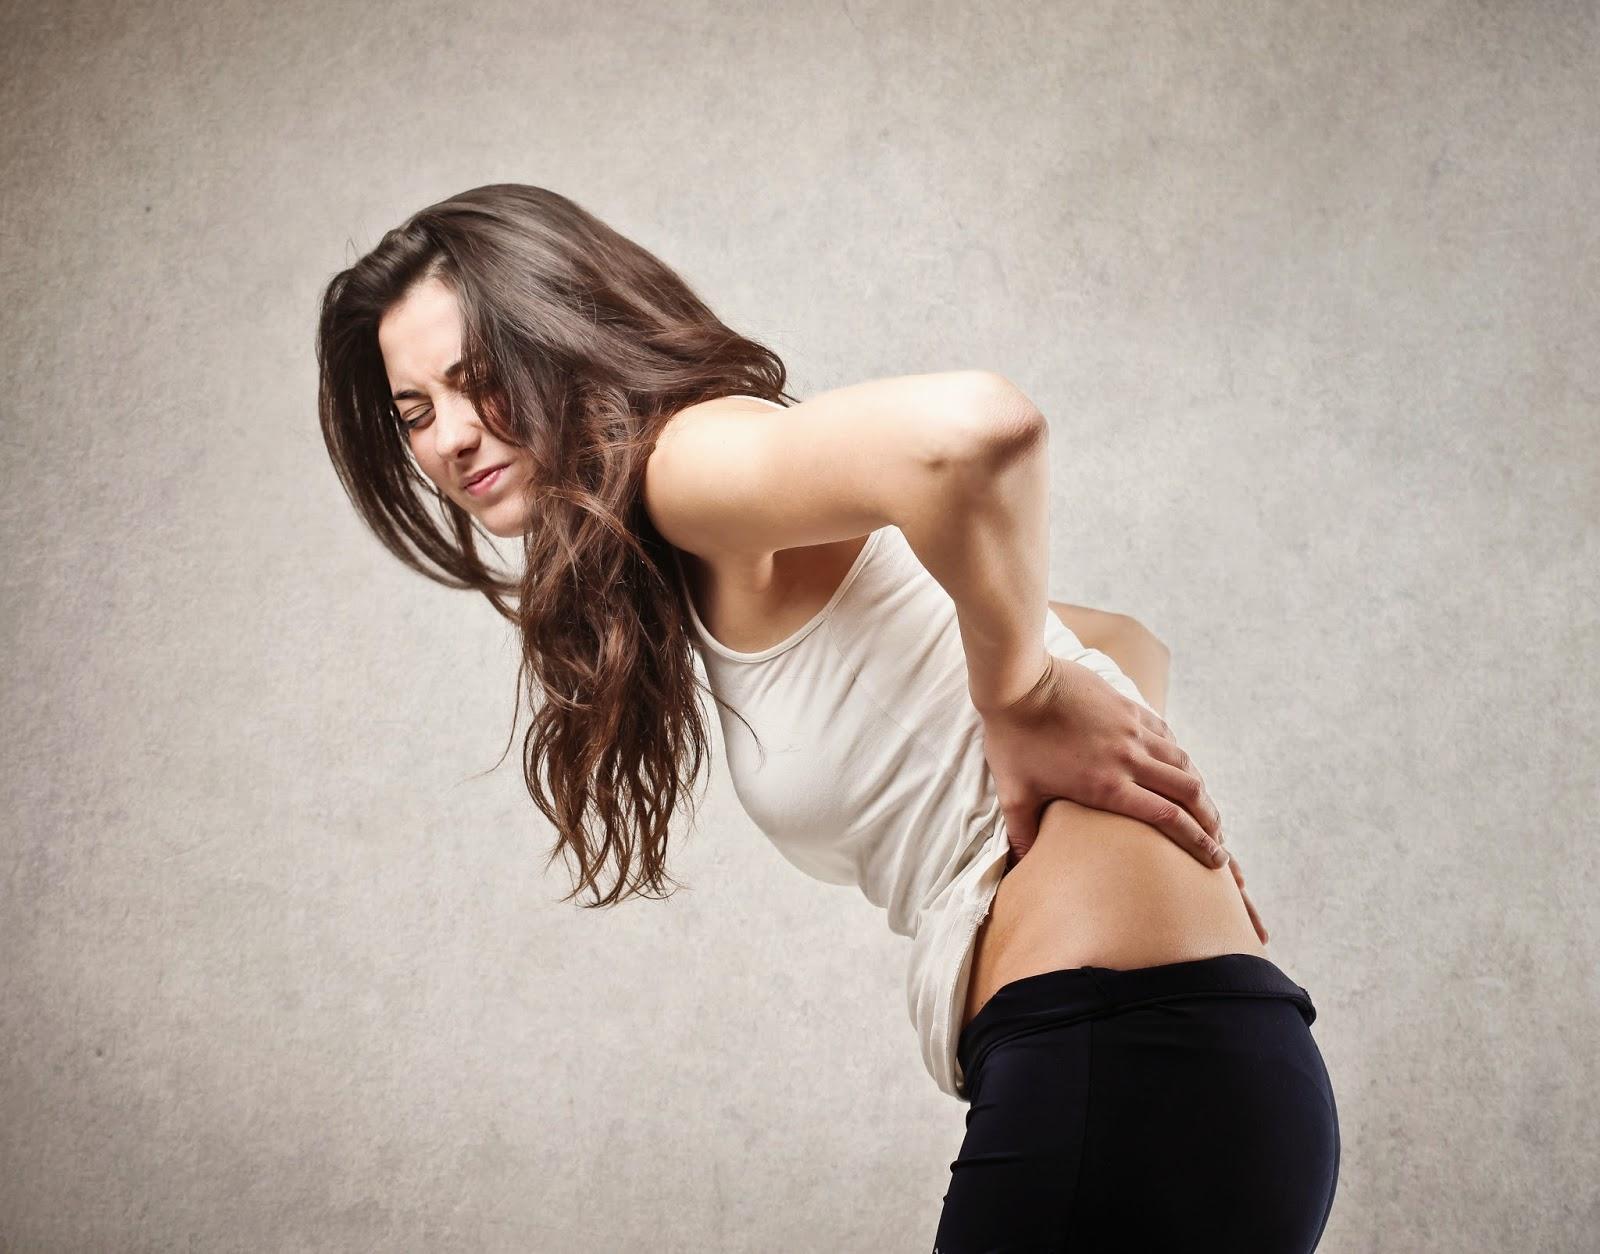 Back Pain Weather is Ruled Out as Culprit in a New Study